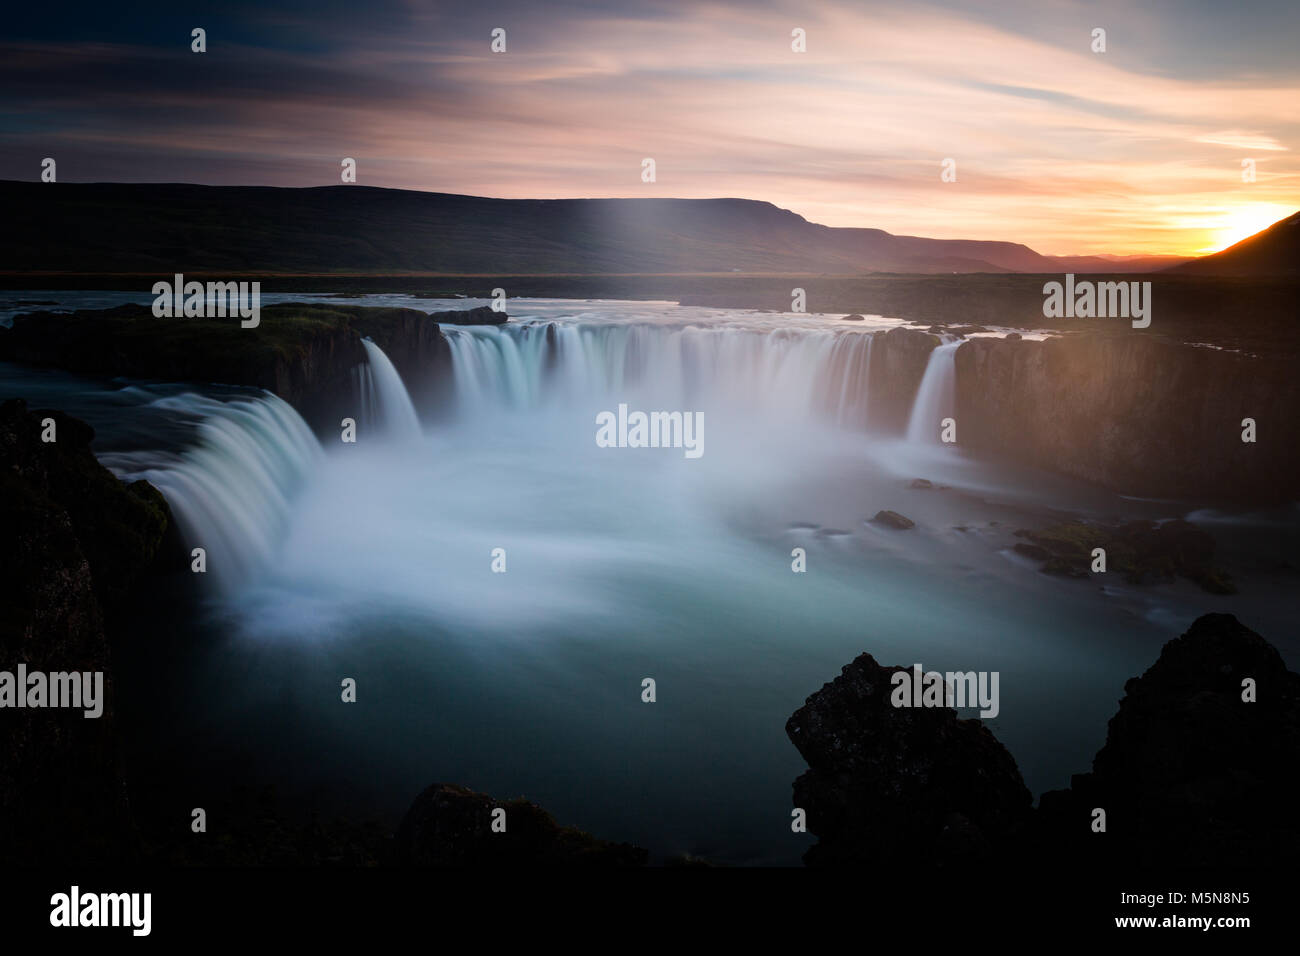 Godafoss waterfall and landscape, Iceland, Europe - Stock Image